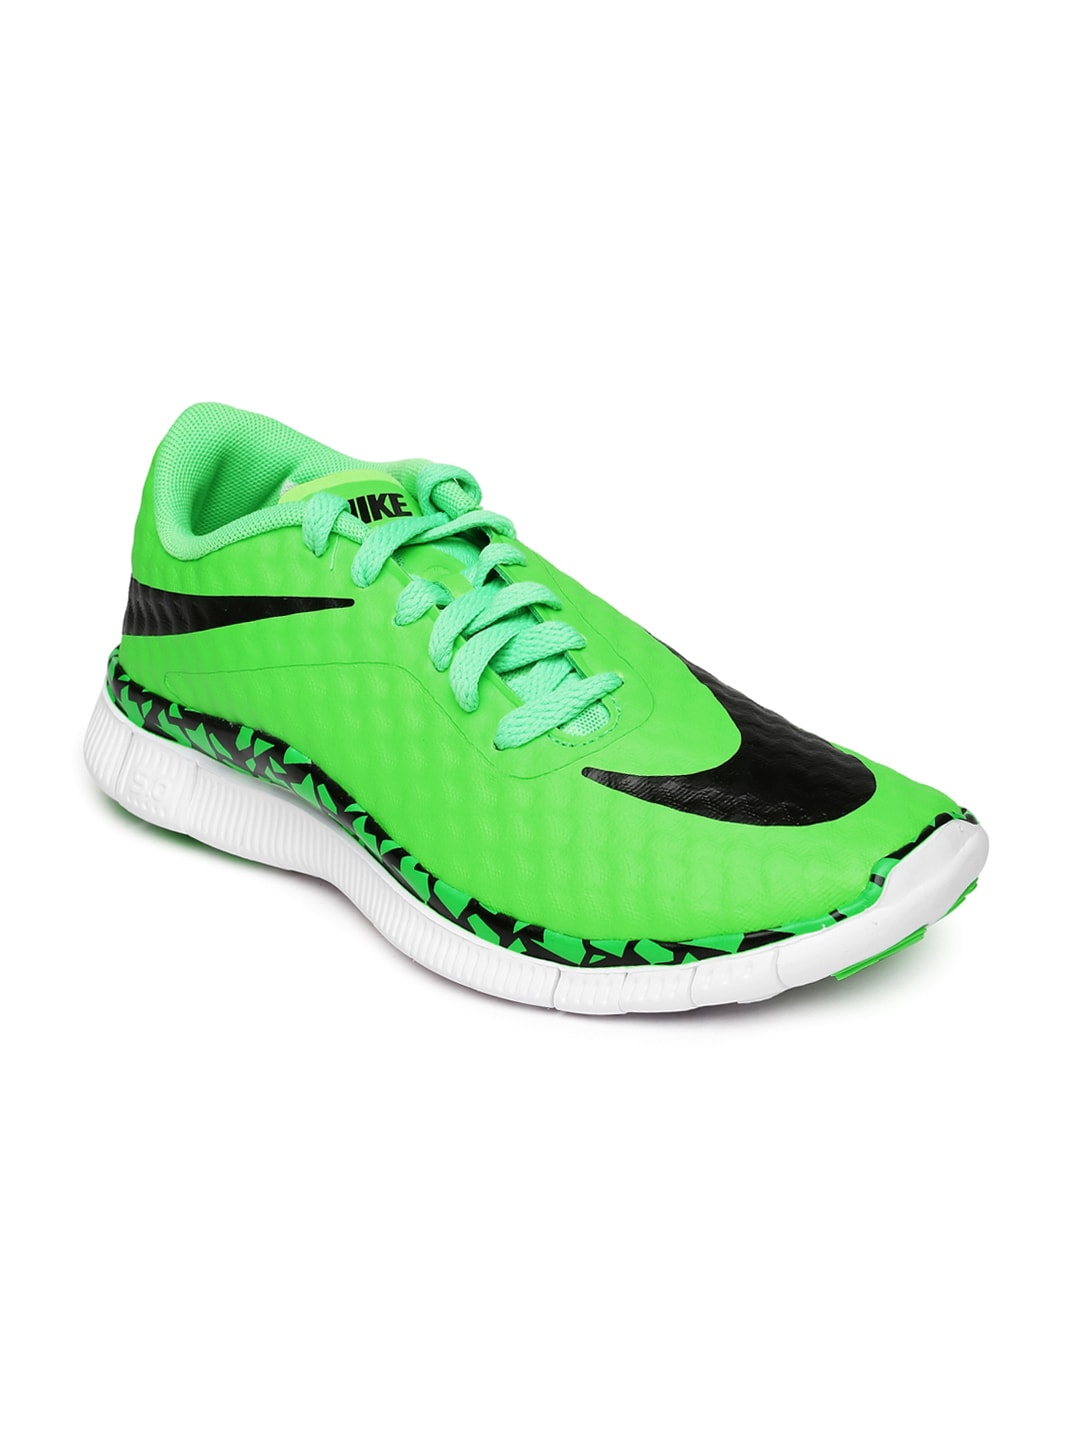 competitive price e55a8 9466a Nike 705390-300 Kids Green Free Hypervenom Casual Shoes